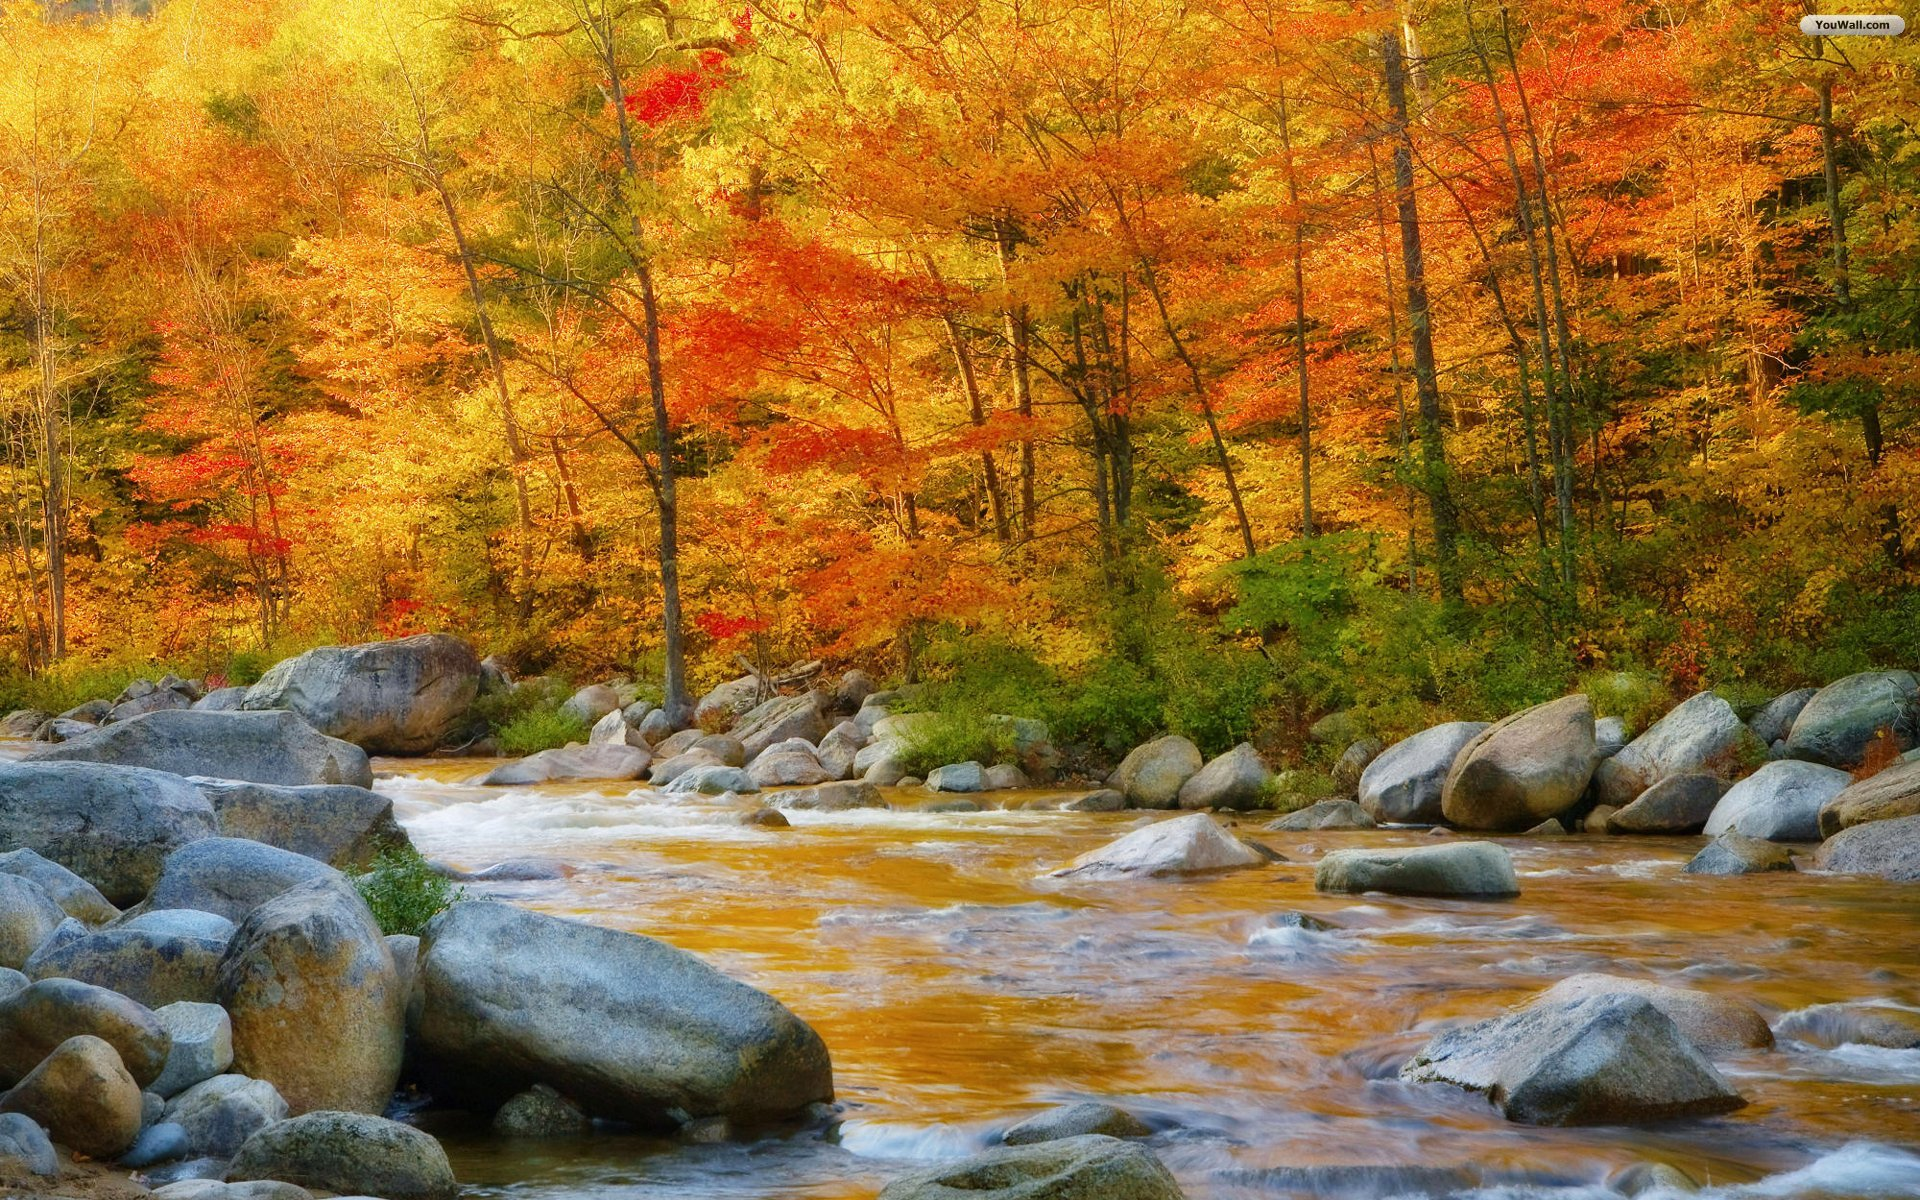 New Hampshire In Autumn Wallpaper   Wallpaperwallpapers 1920x1200